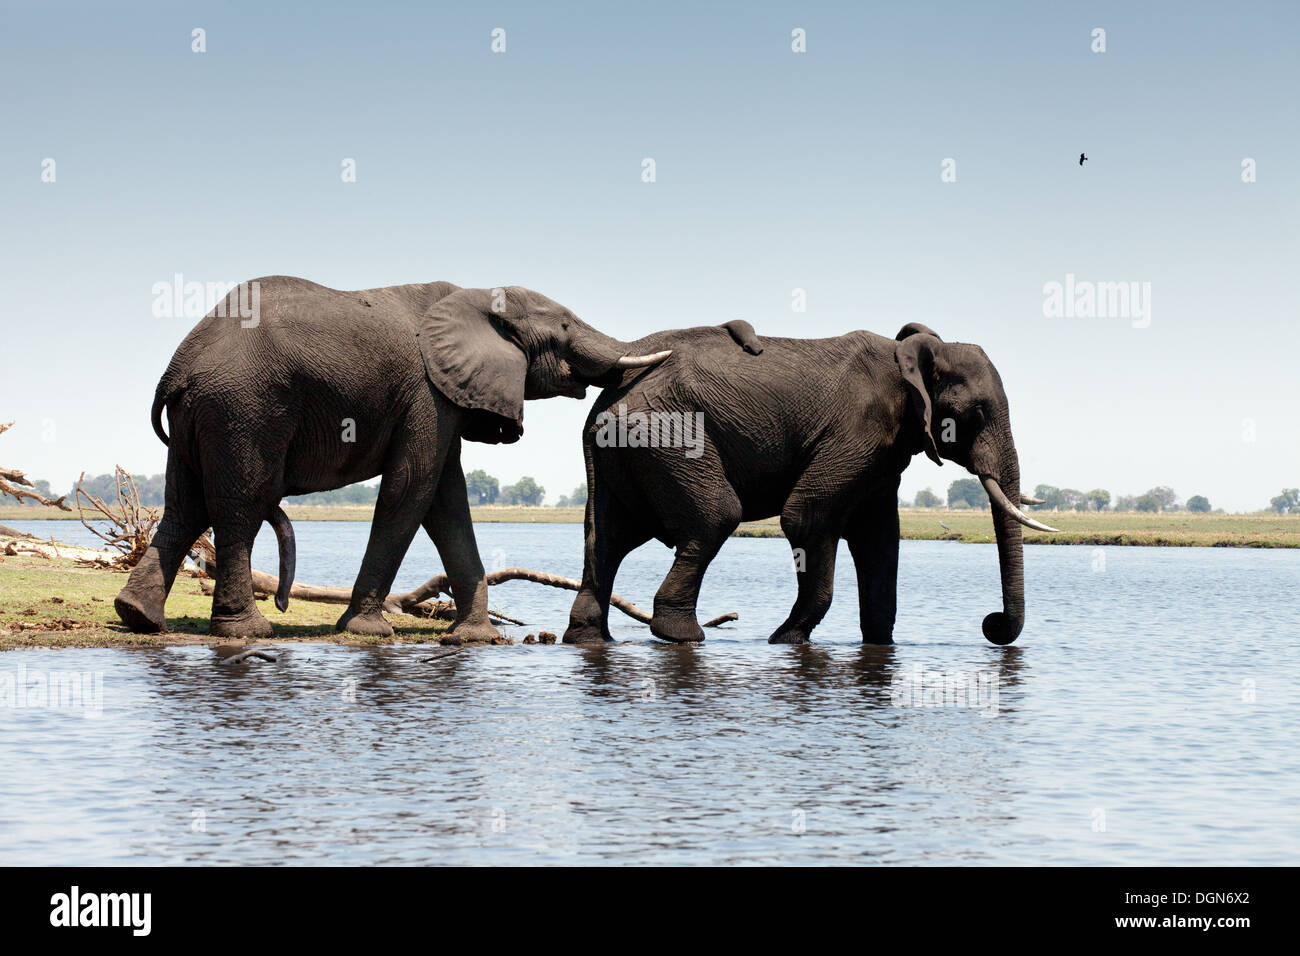 Two African elephants (Loxodonta Africana ) crossing the Chobe River, Chobe National park, Botswana Africa - Stock Image